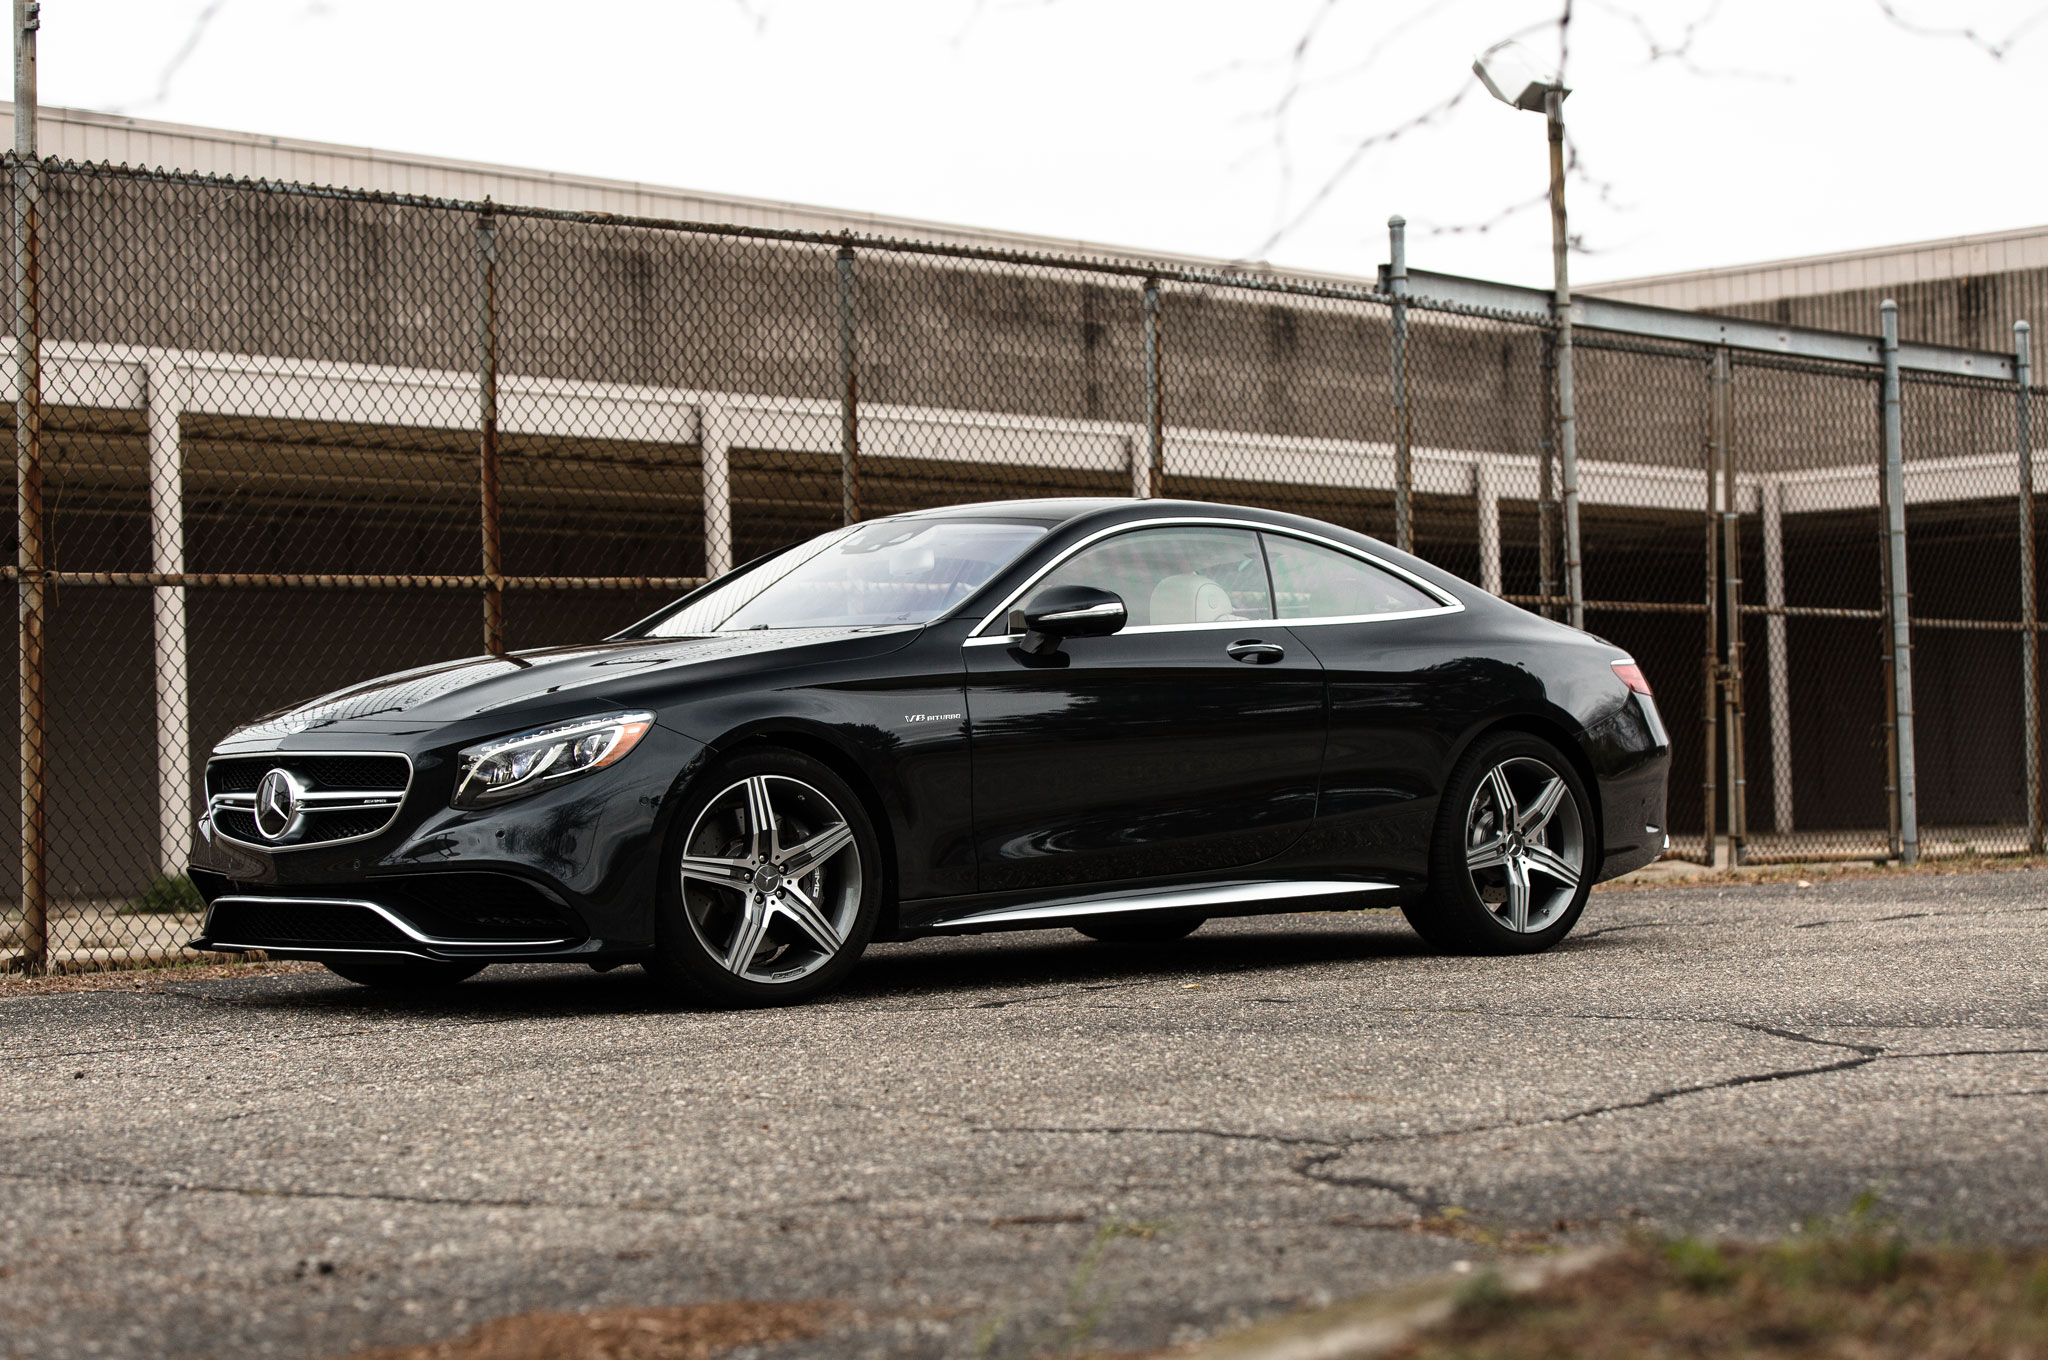 https://st.automobilemag.com/uploads/sites/11/2014/12/2015-Mercedes-Benz-S63-AMG-4Matic-Coupe-front-driver-profile.jpg